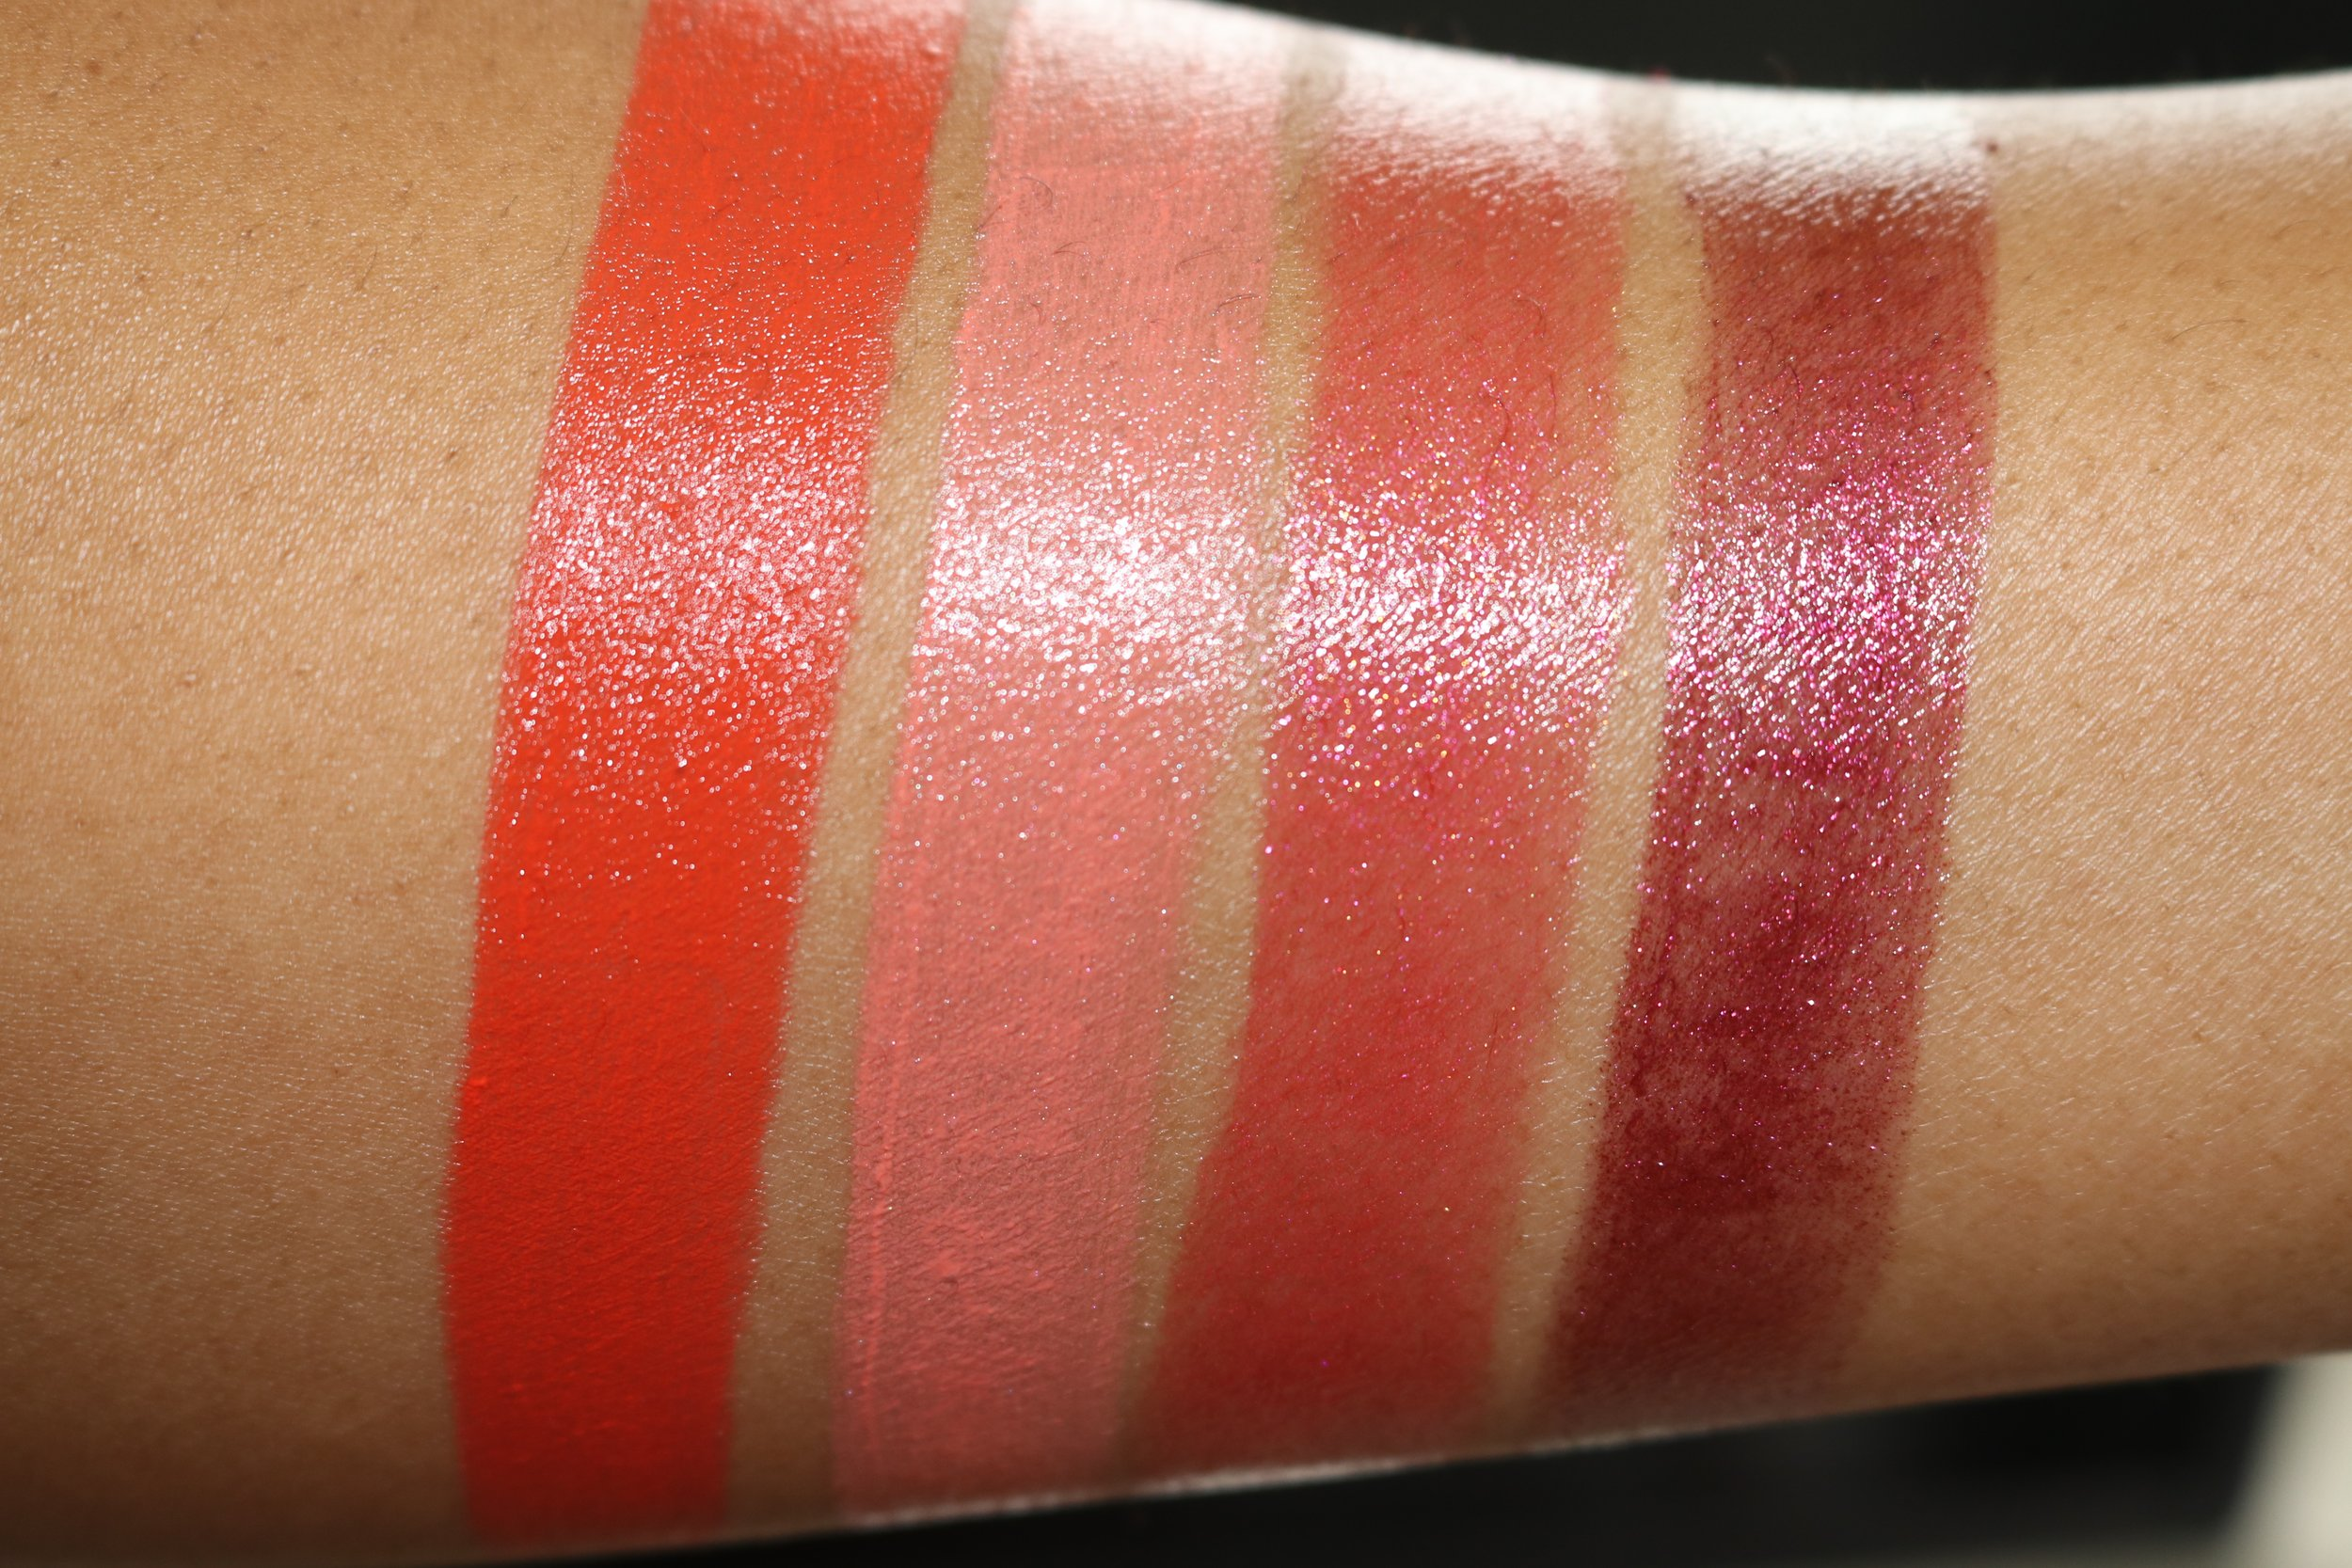 Swatches L to R:340 Hot Rumor (creme), 350 Sly Wink (shimmer pearl), 360 Flash Chill (shimmer pearl), 370 Pocket Venus (cooled chrome)